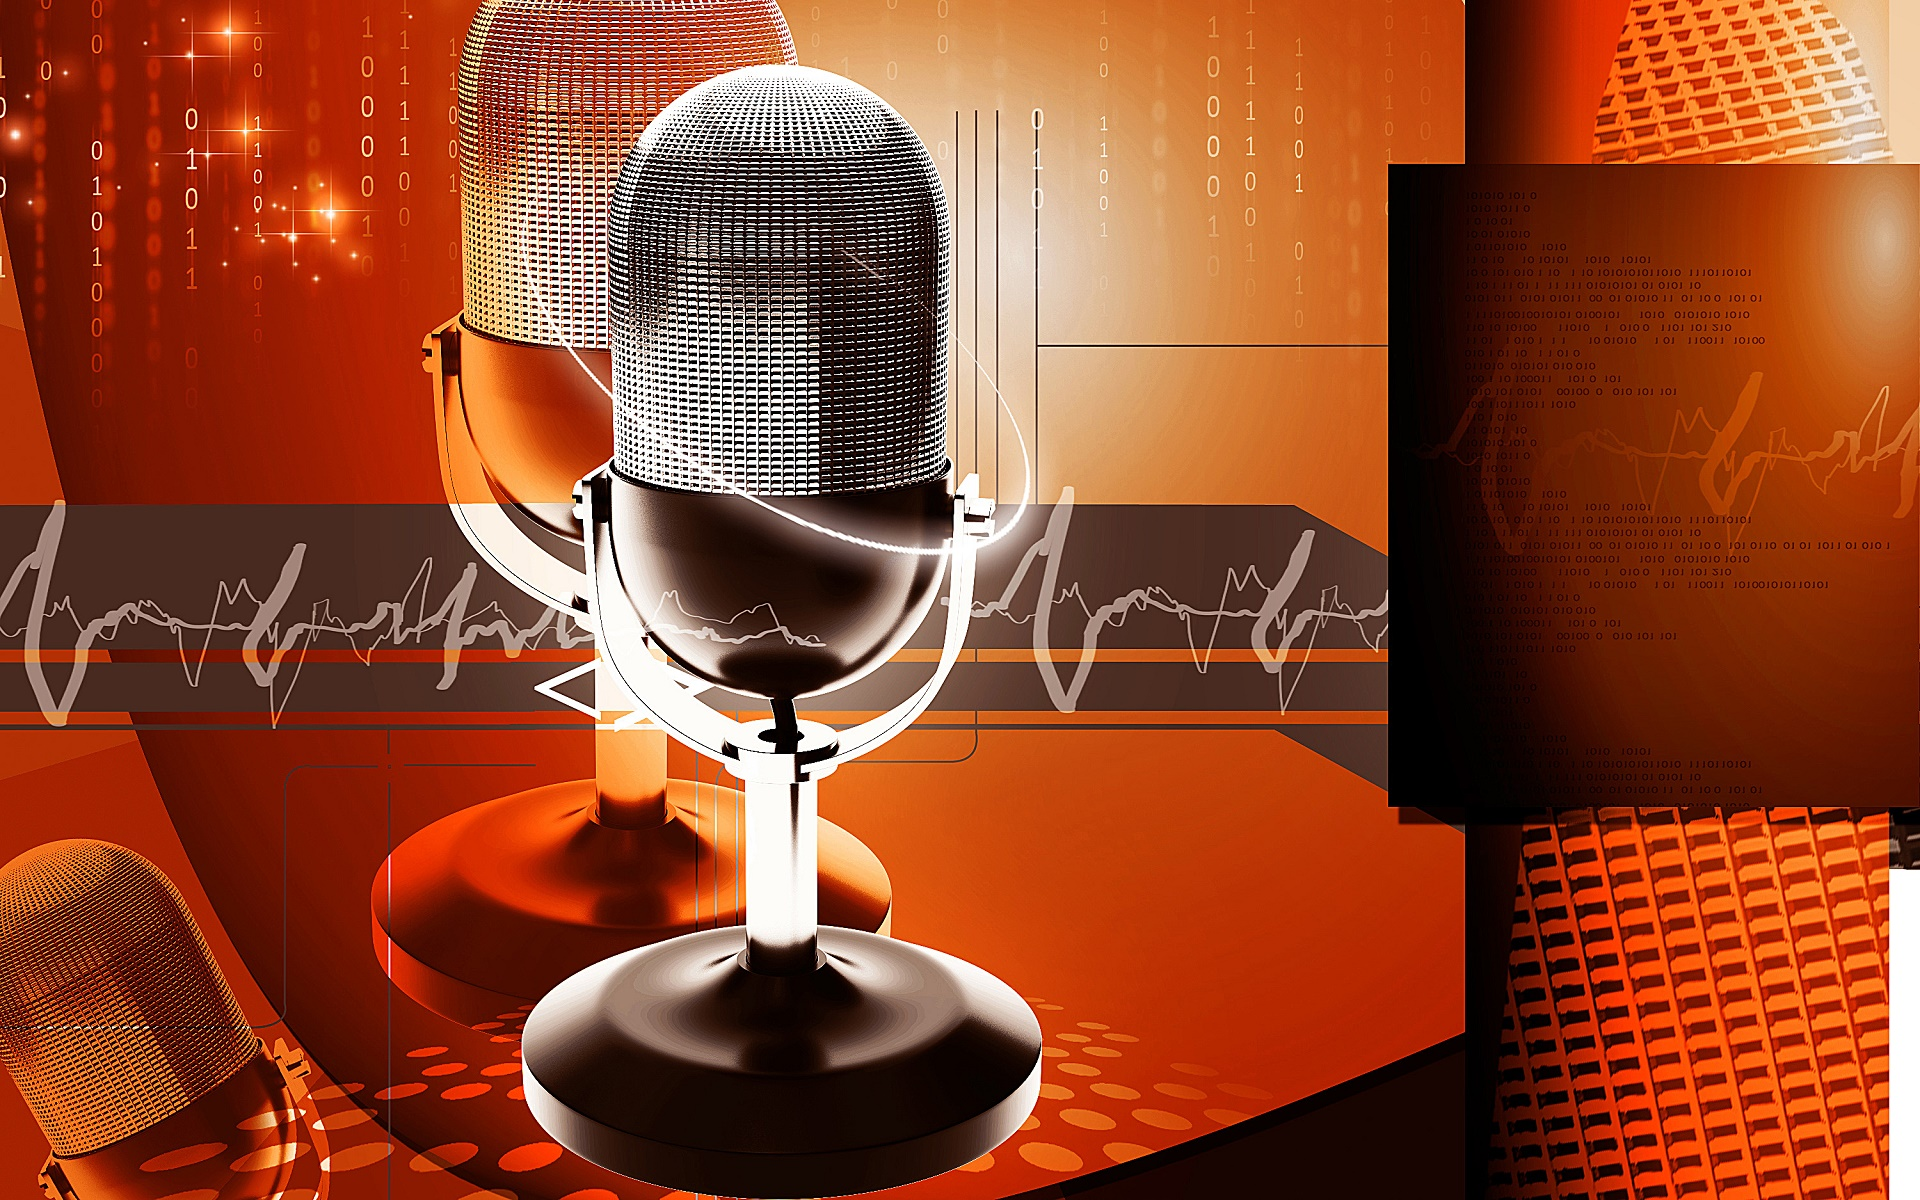 Microphone hd wallpaper background image 1920x1200 - Microphone wallpaper ...